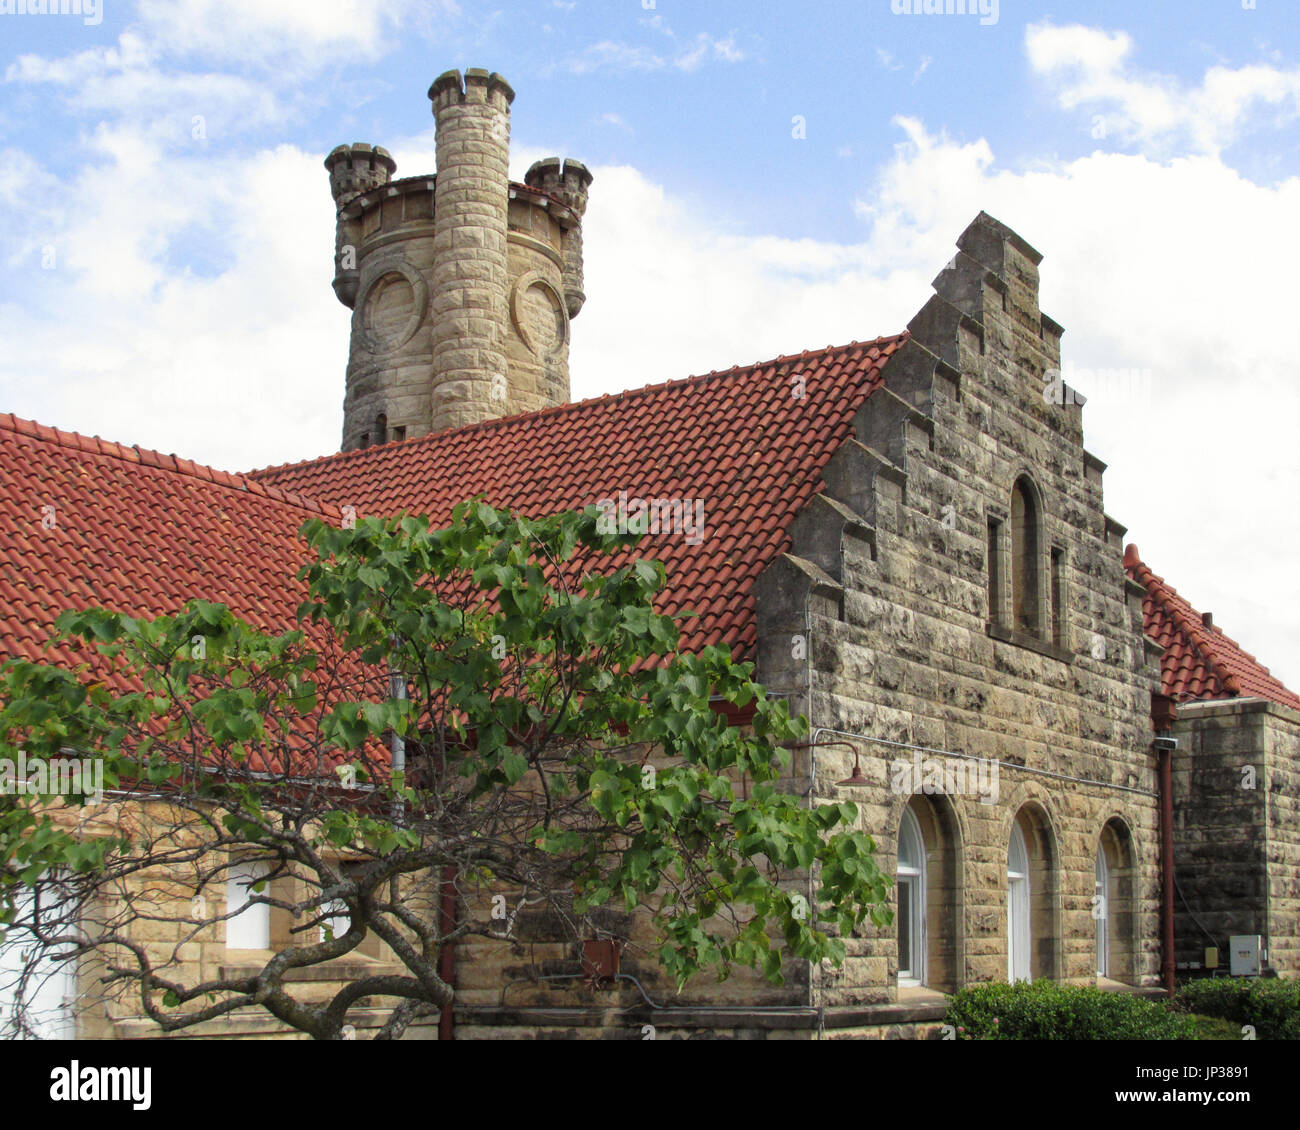 The old Santa Fe train depot in Shawnee Oklahoma is now a museum.  The building has an interesting stone tower.  This view is from the side. - Stock Image